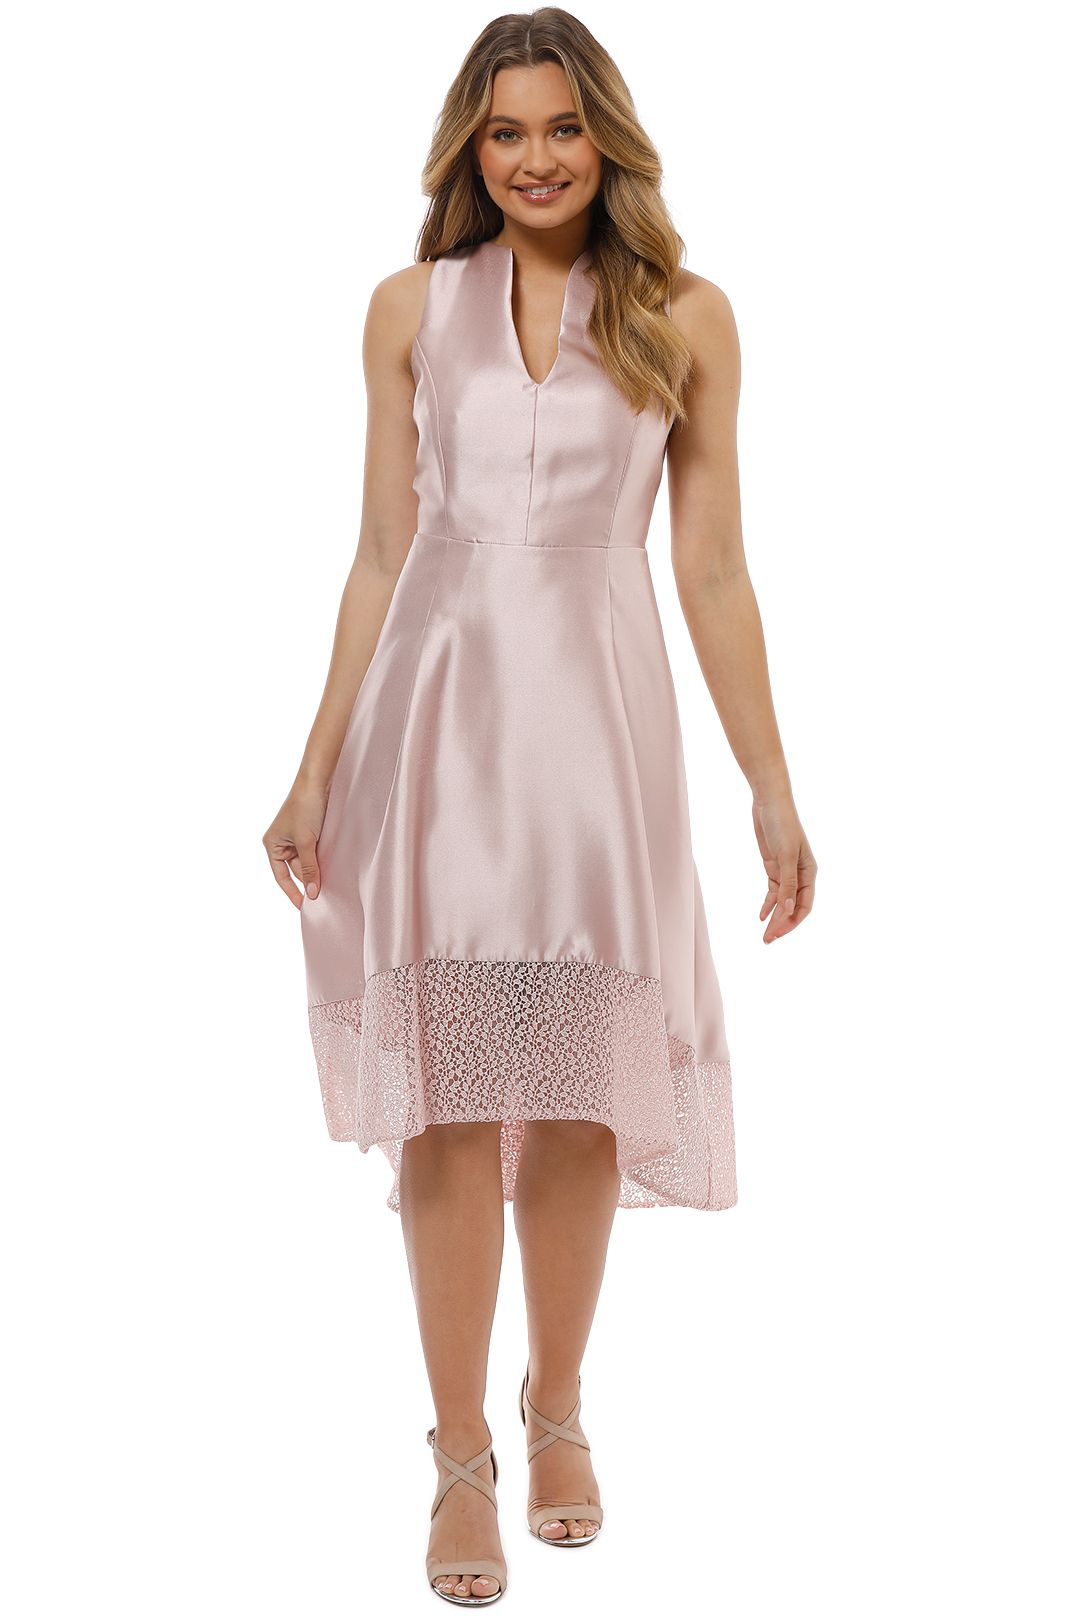 Montique - Chantelle Party Dress - Pink - Front